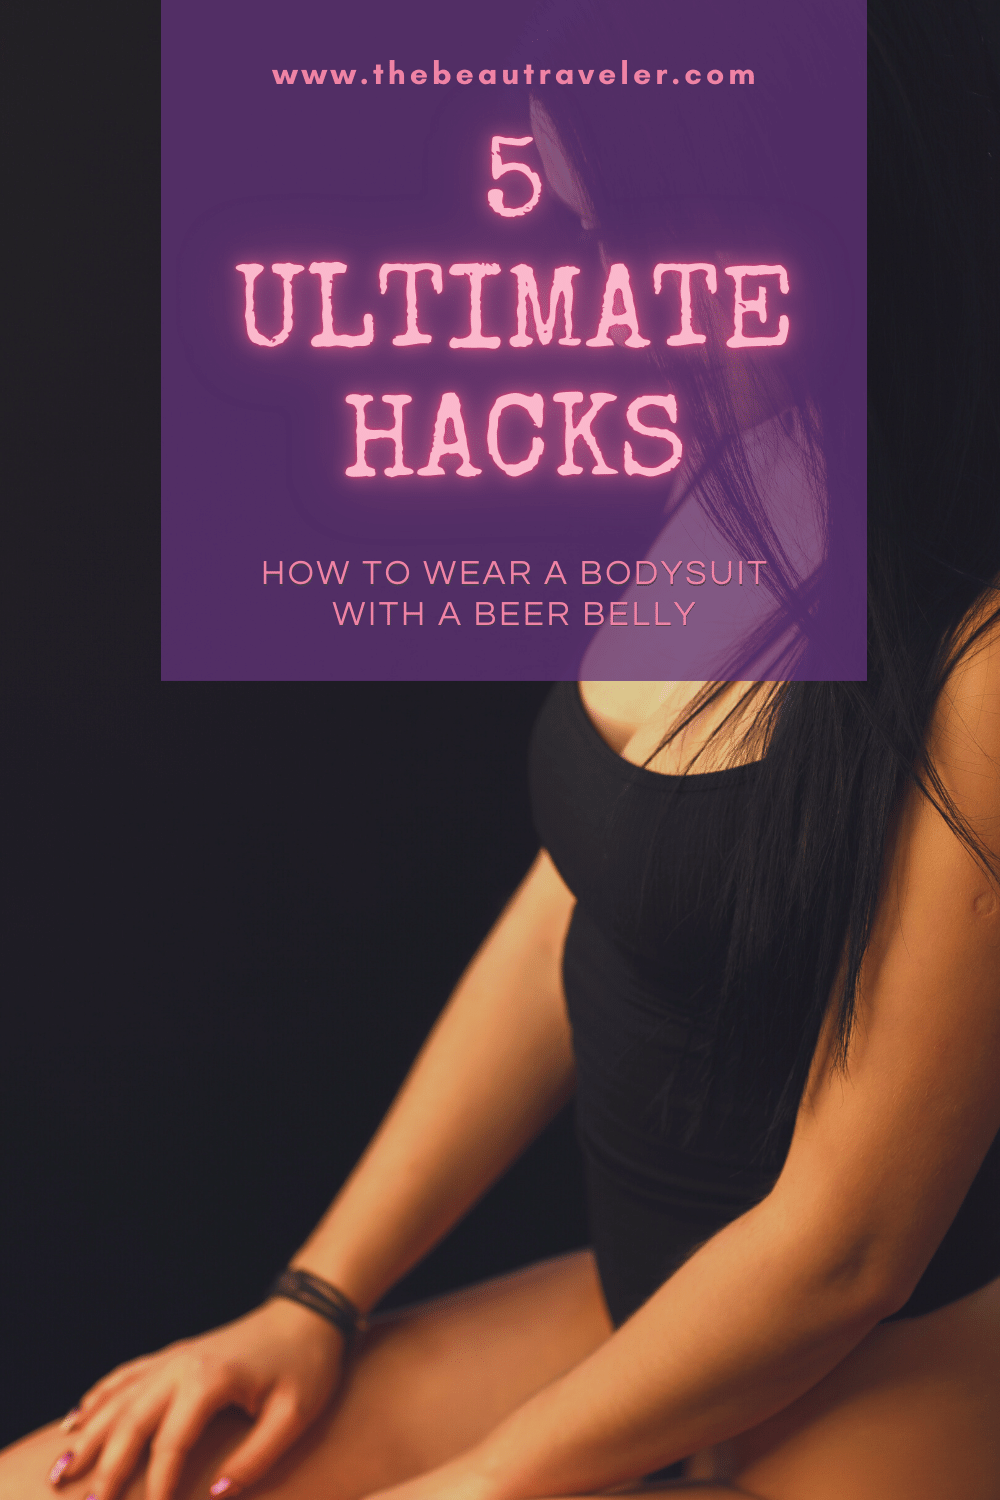 5 ultimate hacks how to wear a bodysuit (1)